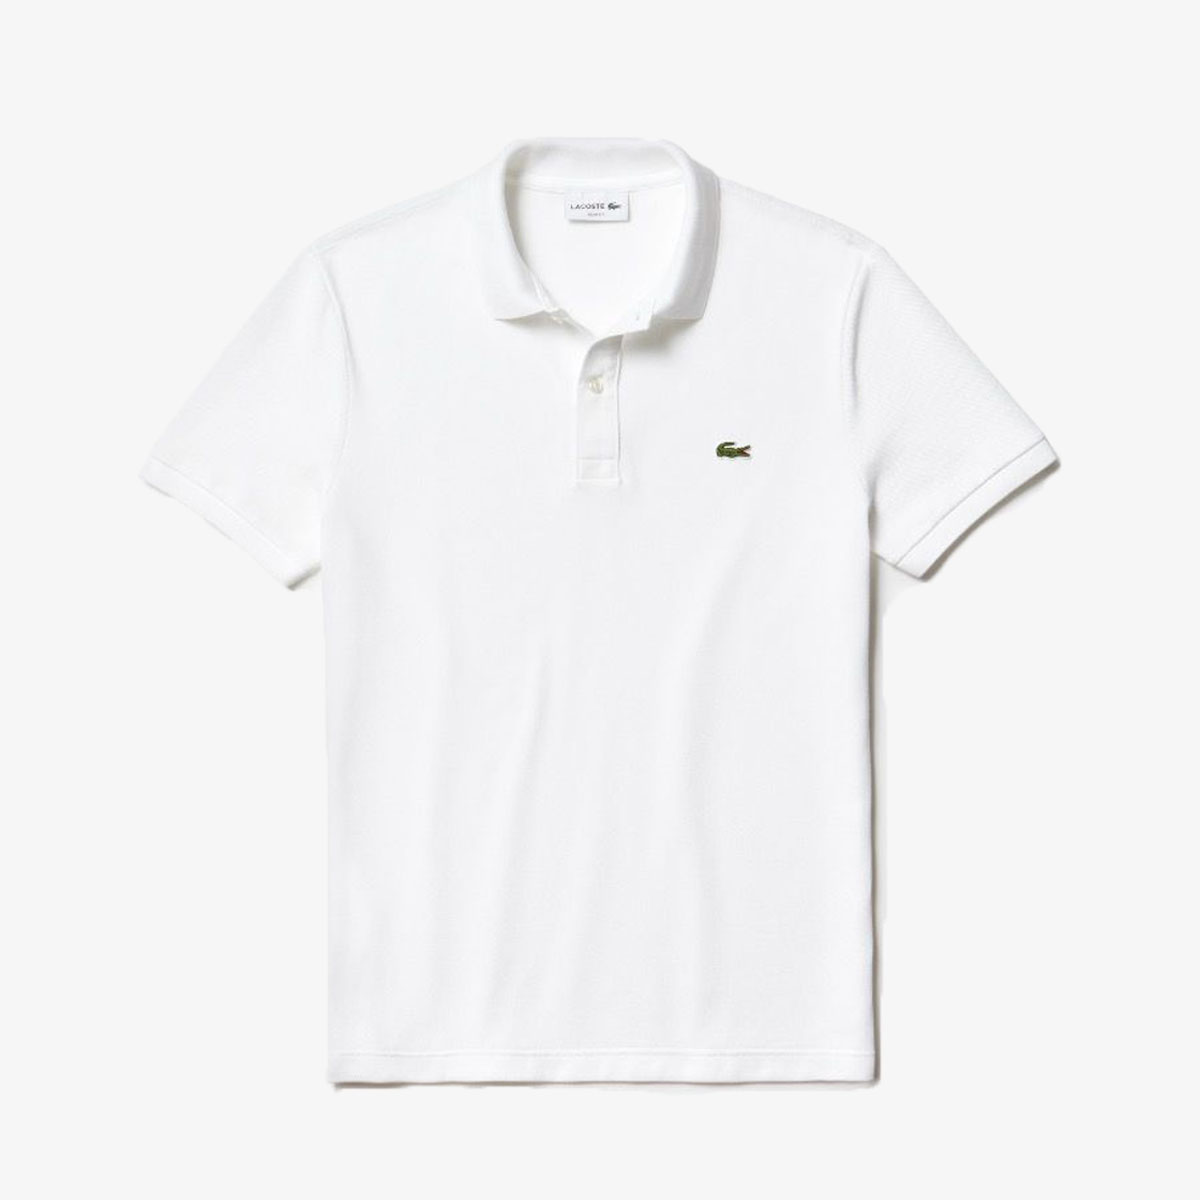 Lacoste Slim Fit Polo PH4012-001 Wit maat